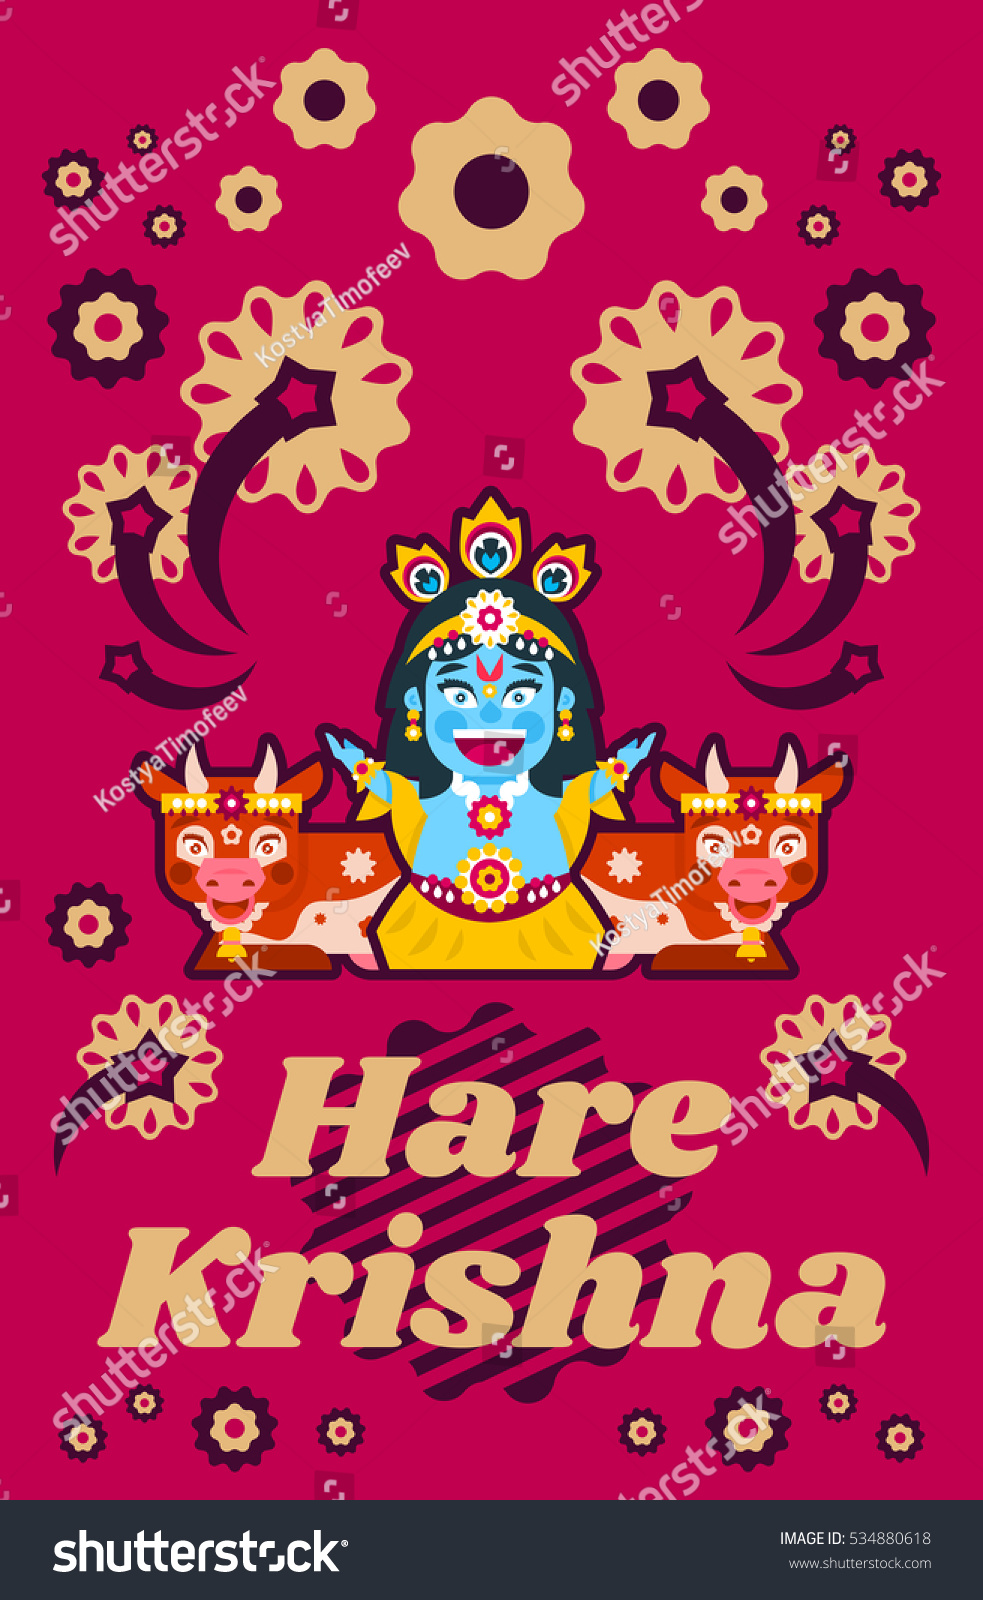 Creative poster illustration on hare krishna stock vector 534880618 creative poster illustration on hare krishna lord krishna sitting in cows environment decorations kristyandbryce Gallery